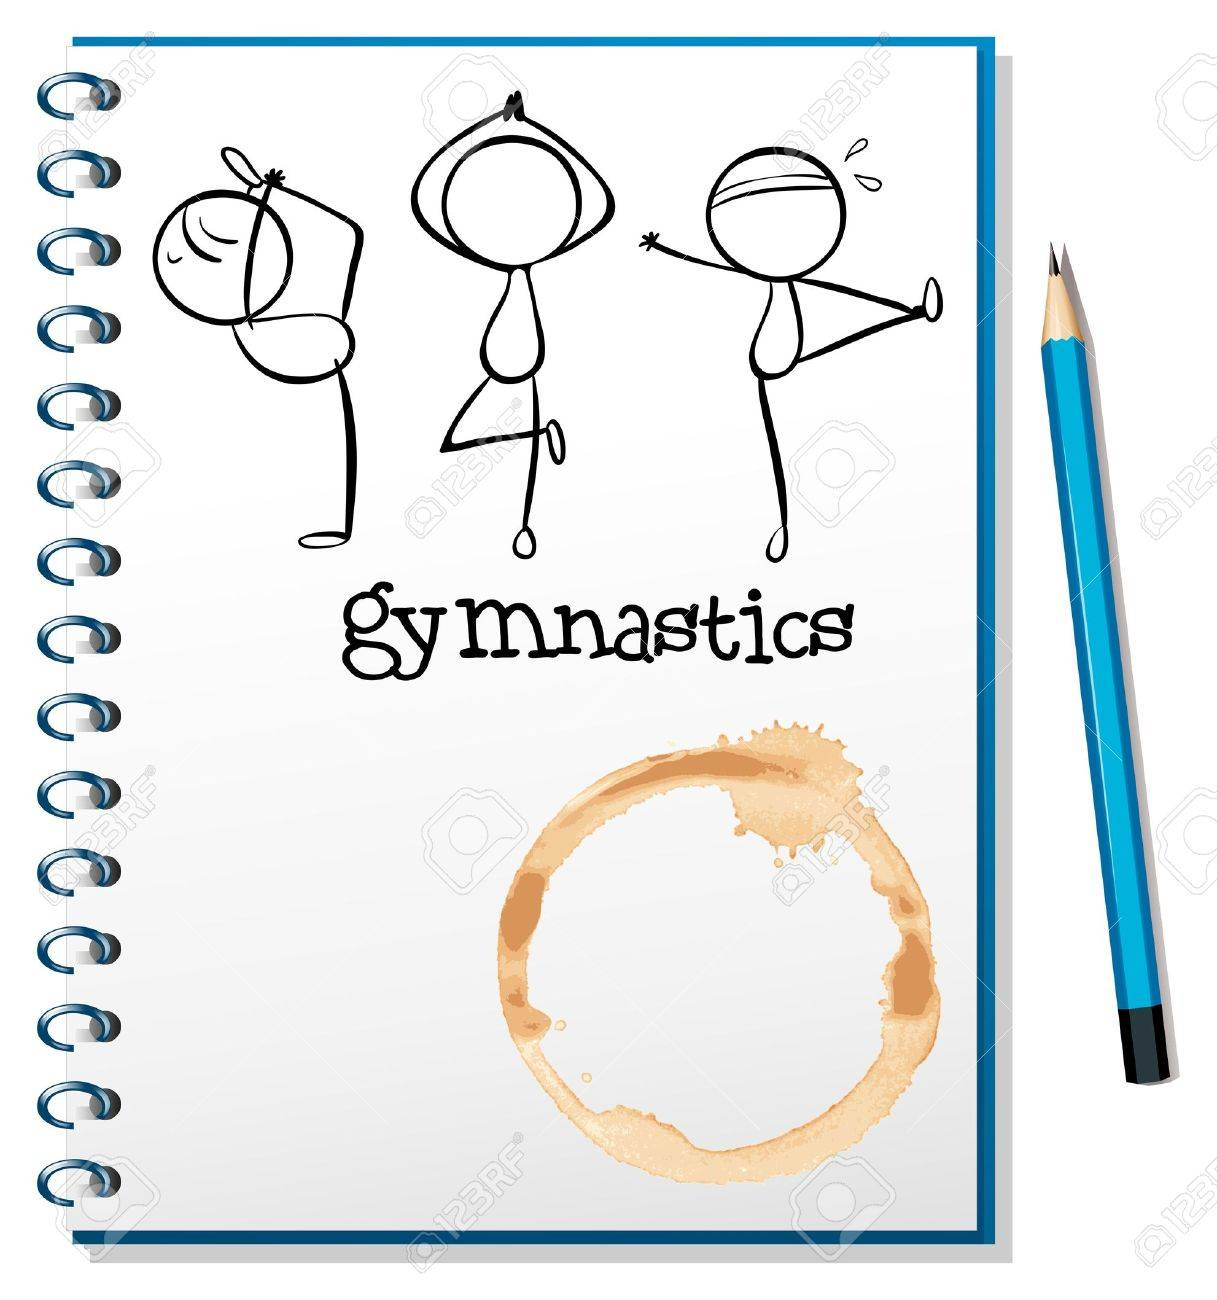 Illustration of a notebook with a sketch of the three gymnasts on a white background Stock Vector - 18834039